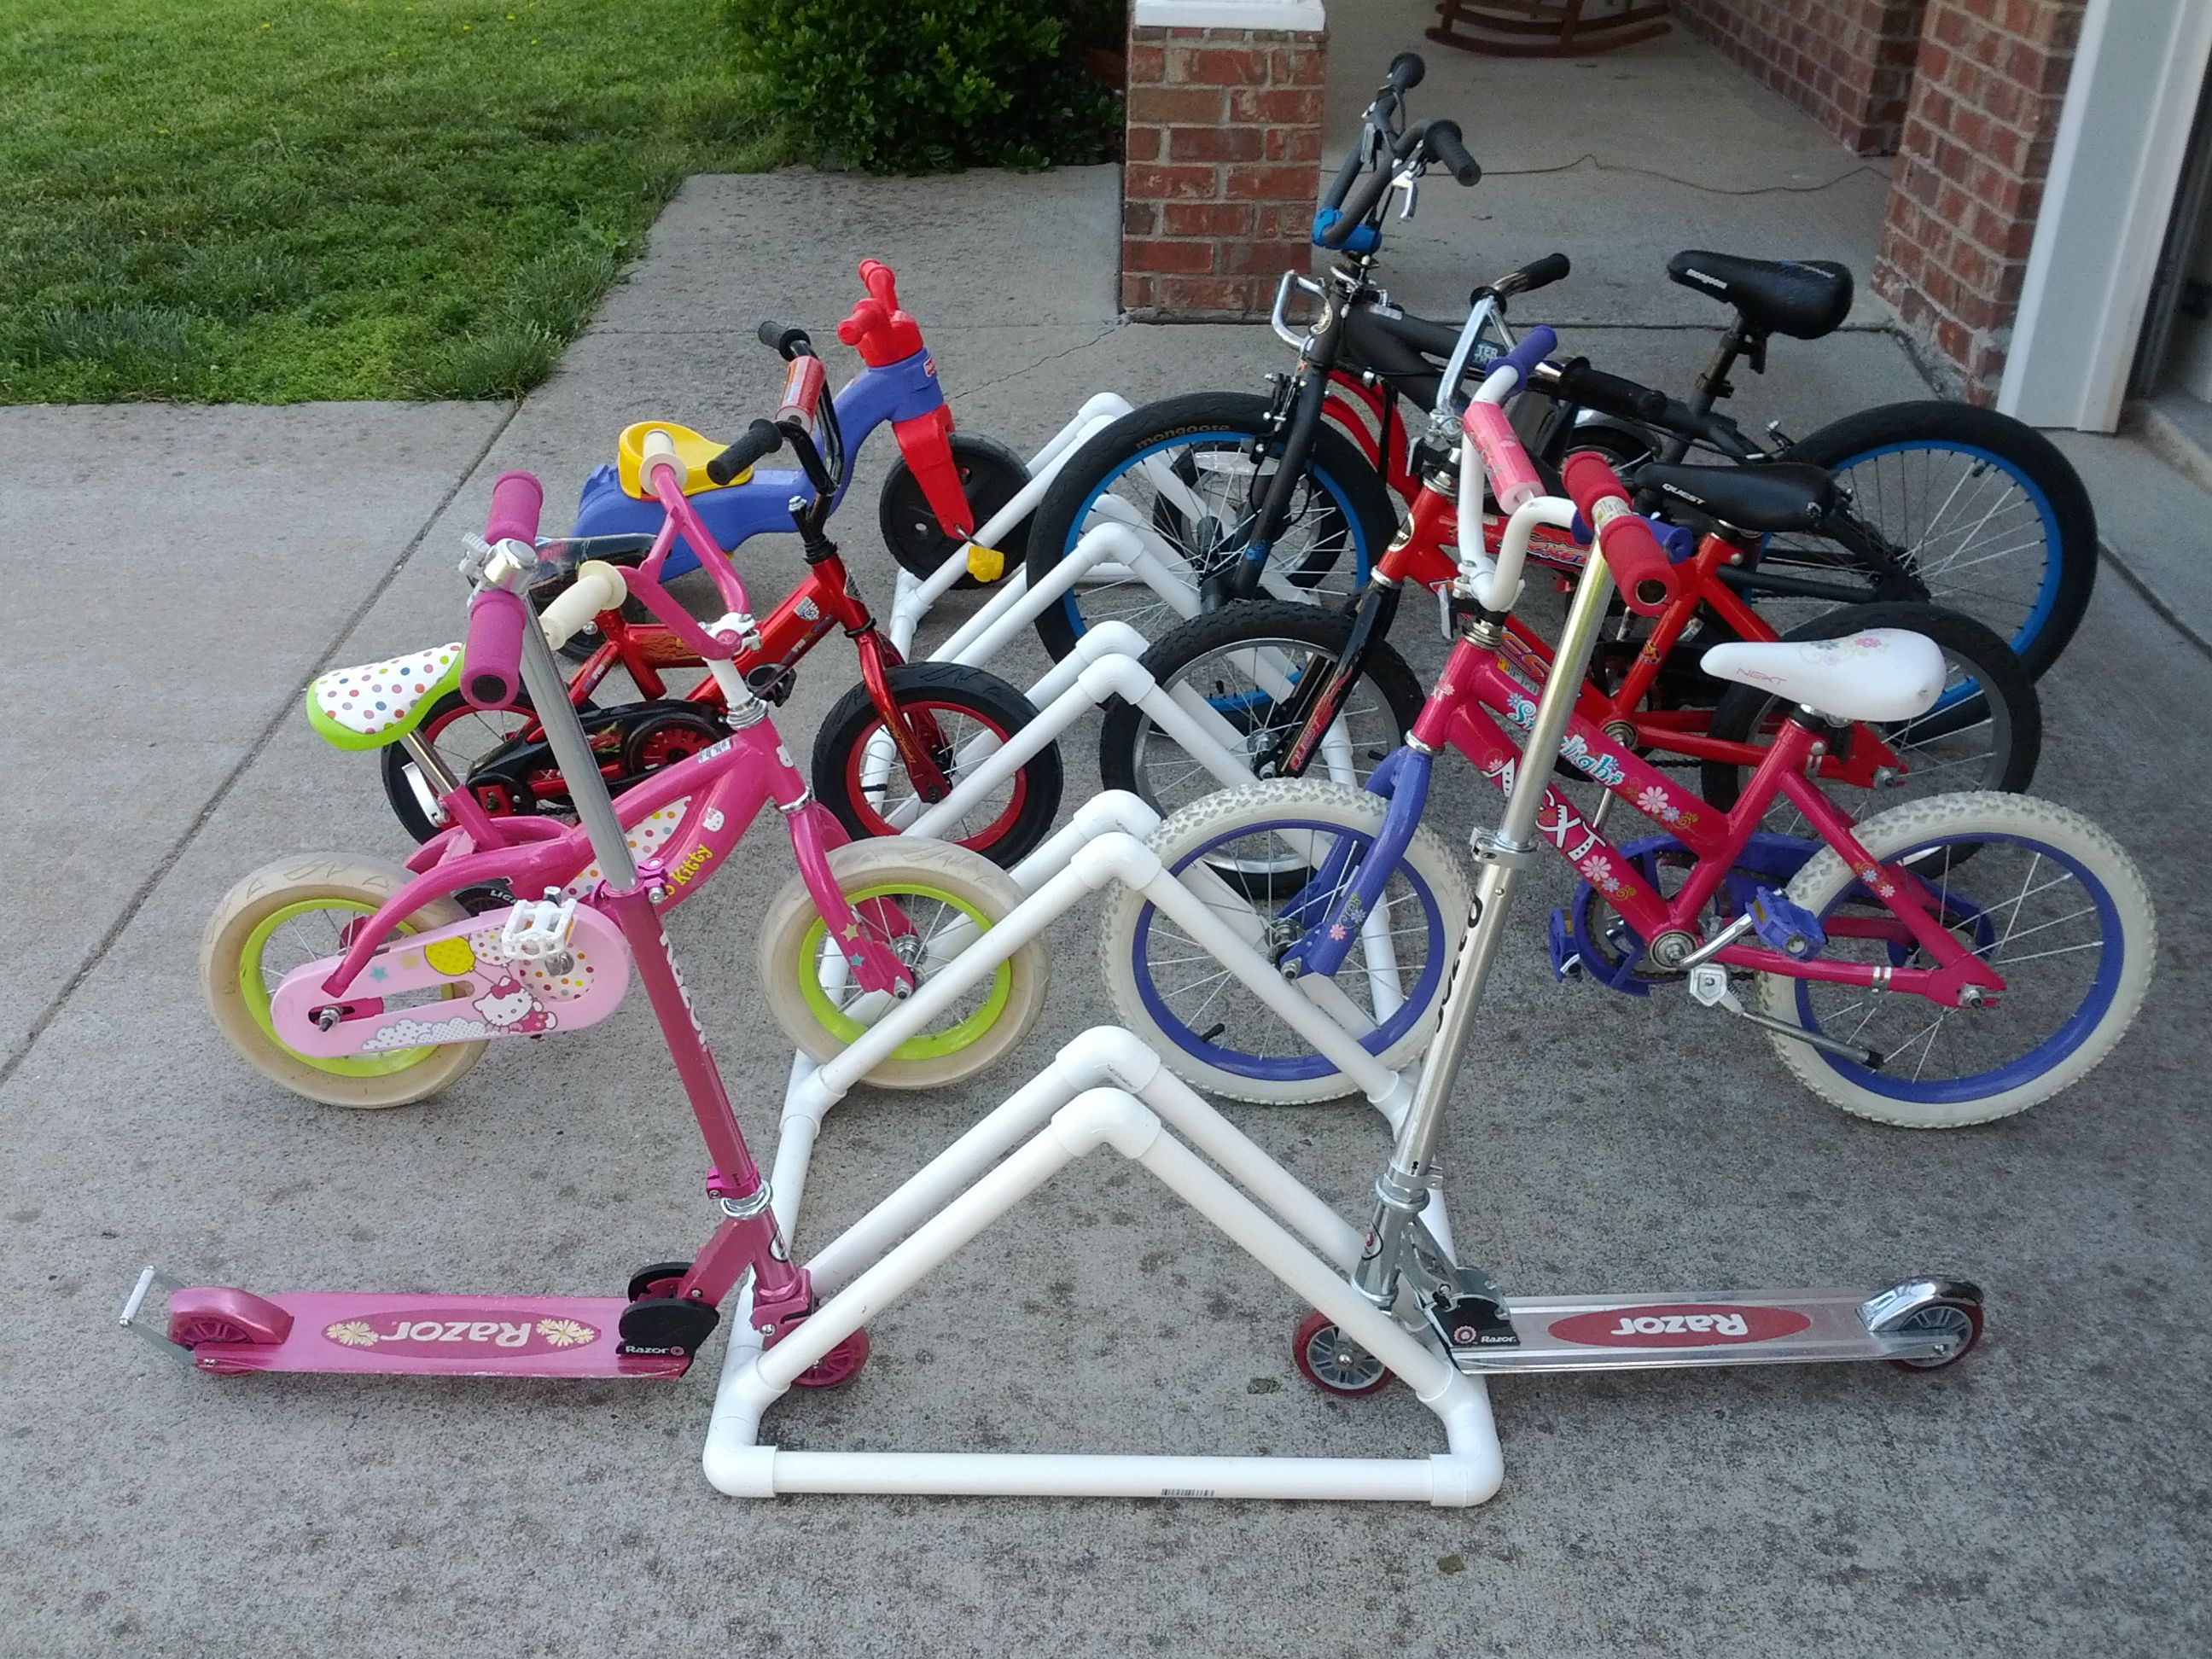 DIY Bike rack made from PVC. Great idea!